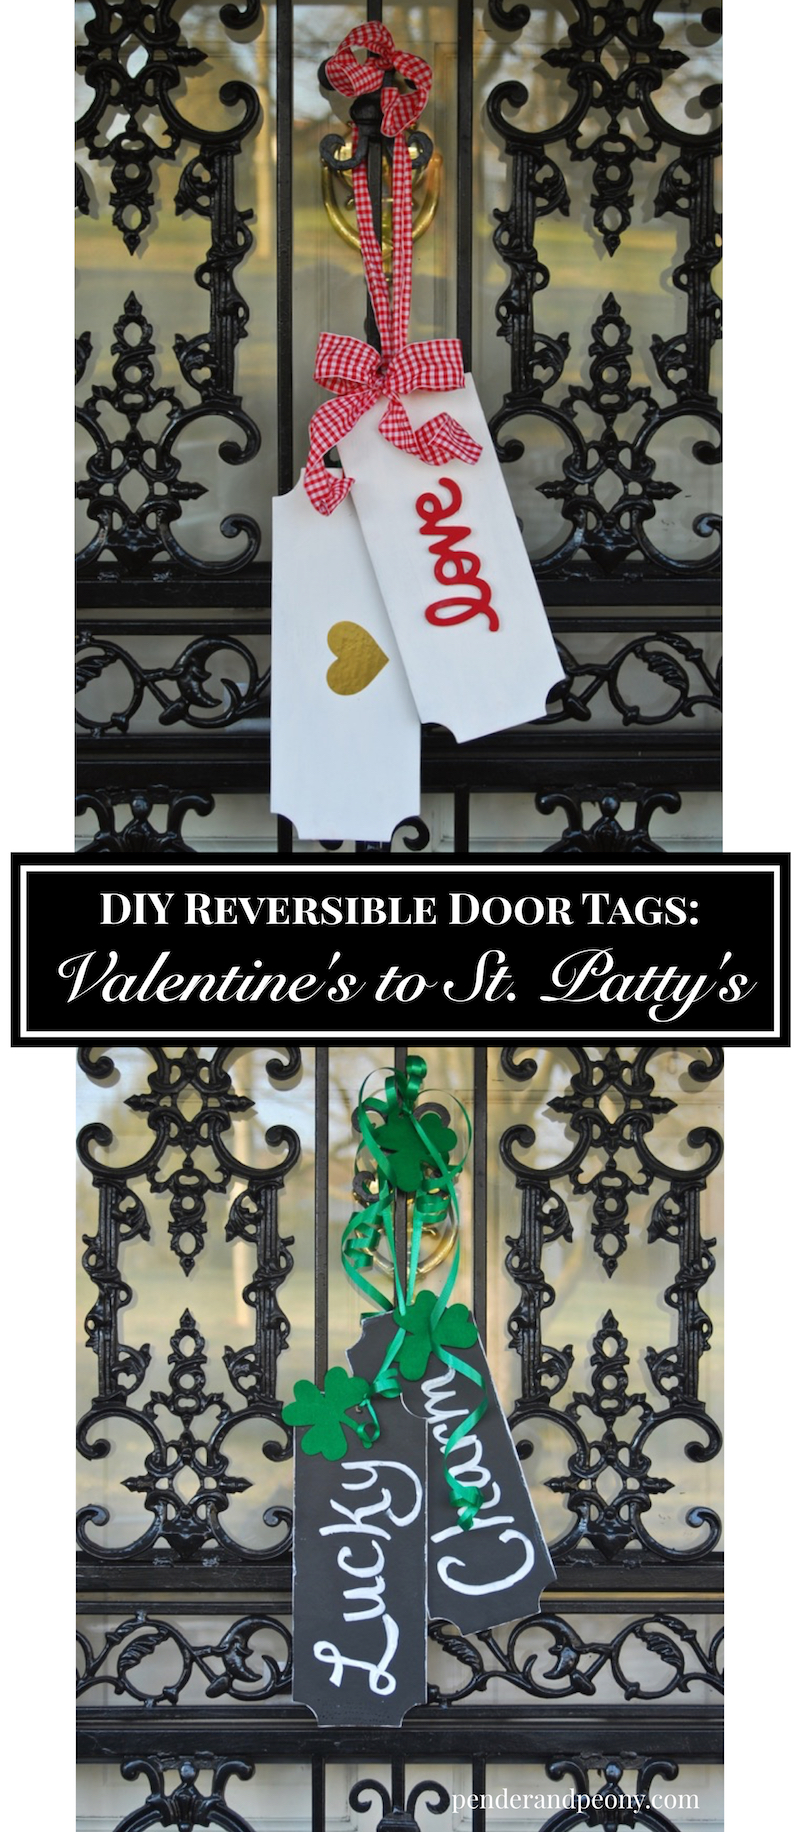 Make decorating your front door for Valentine's Day and St. Patrick's Day easy with these DIY reversible door tags